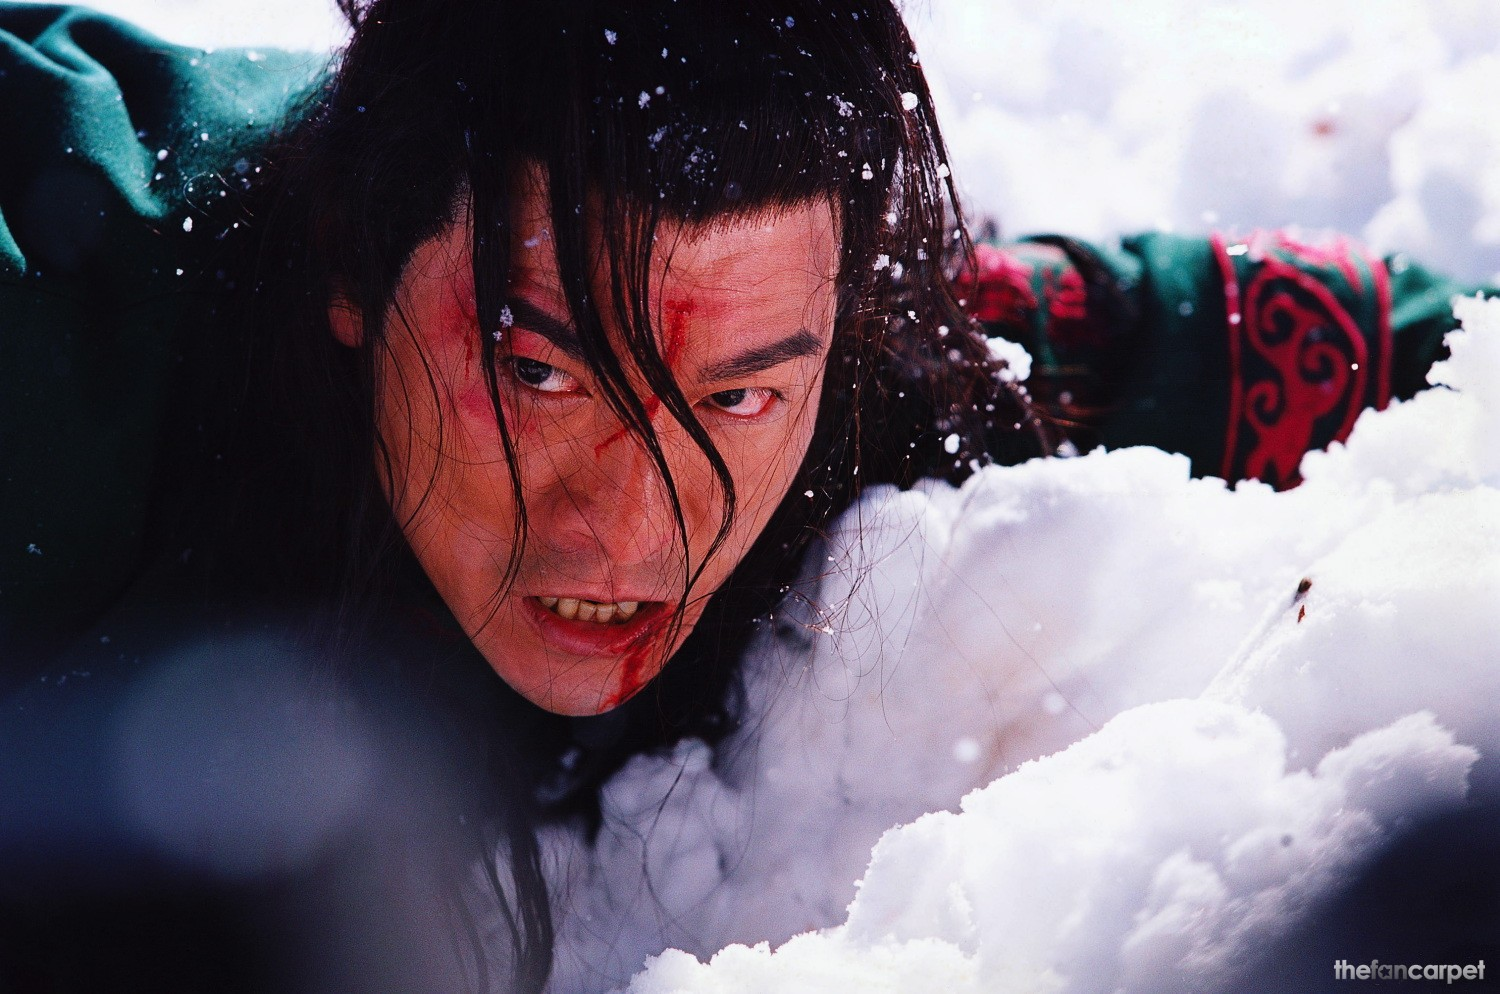 House of flying daggers snow scene pictures